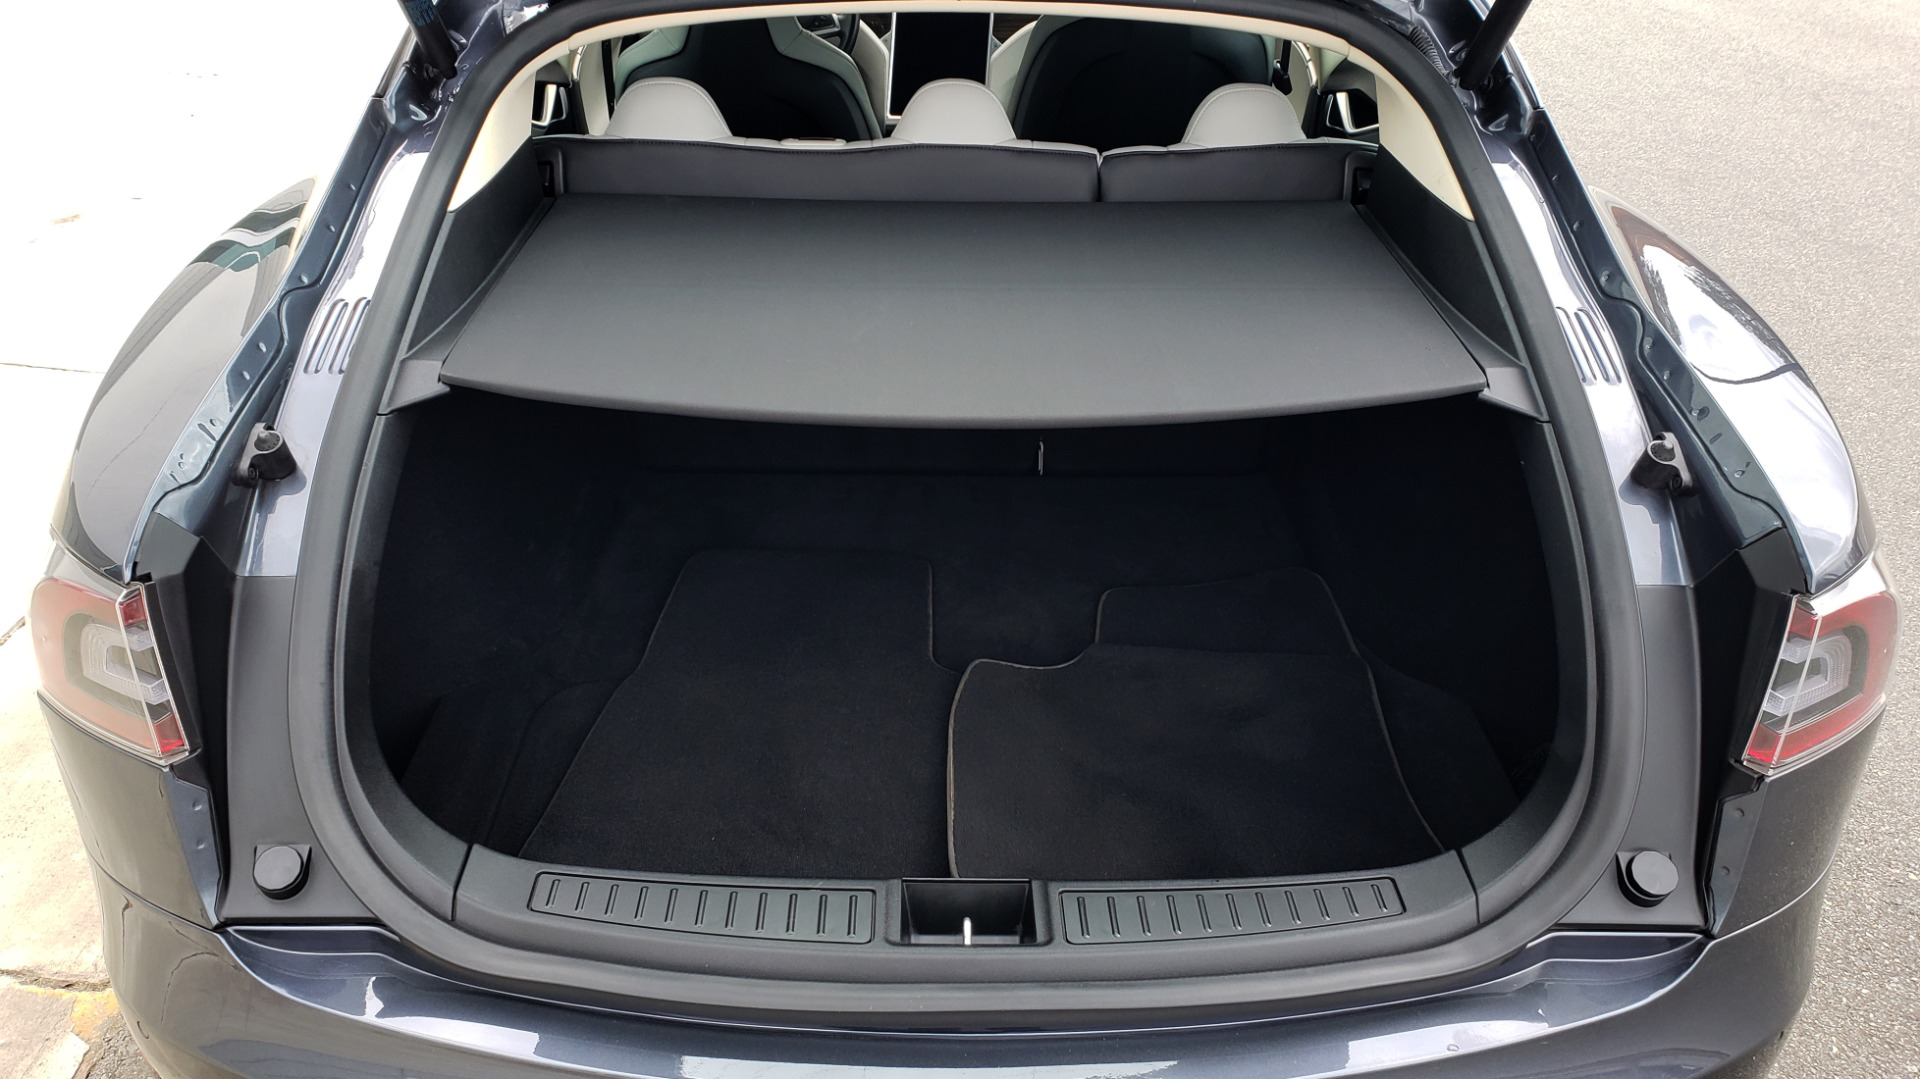 Used 2014 Tesla MODEL S 60 kWh BATTERY / TECH / NAV / SUBZERO / SUNROOF / REARVIEW for sale Sold at Formula Imports in Charlotte NC 28227 12